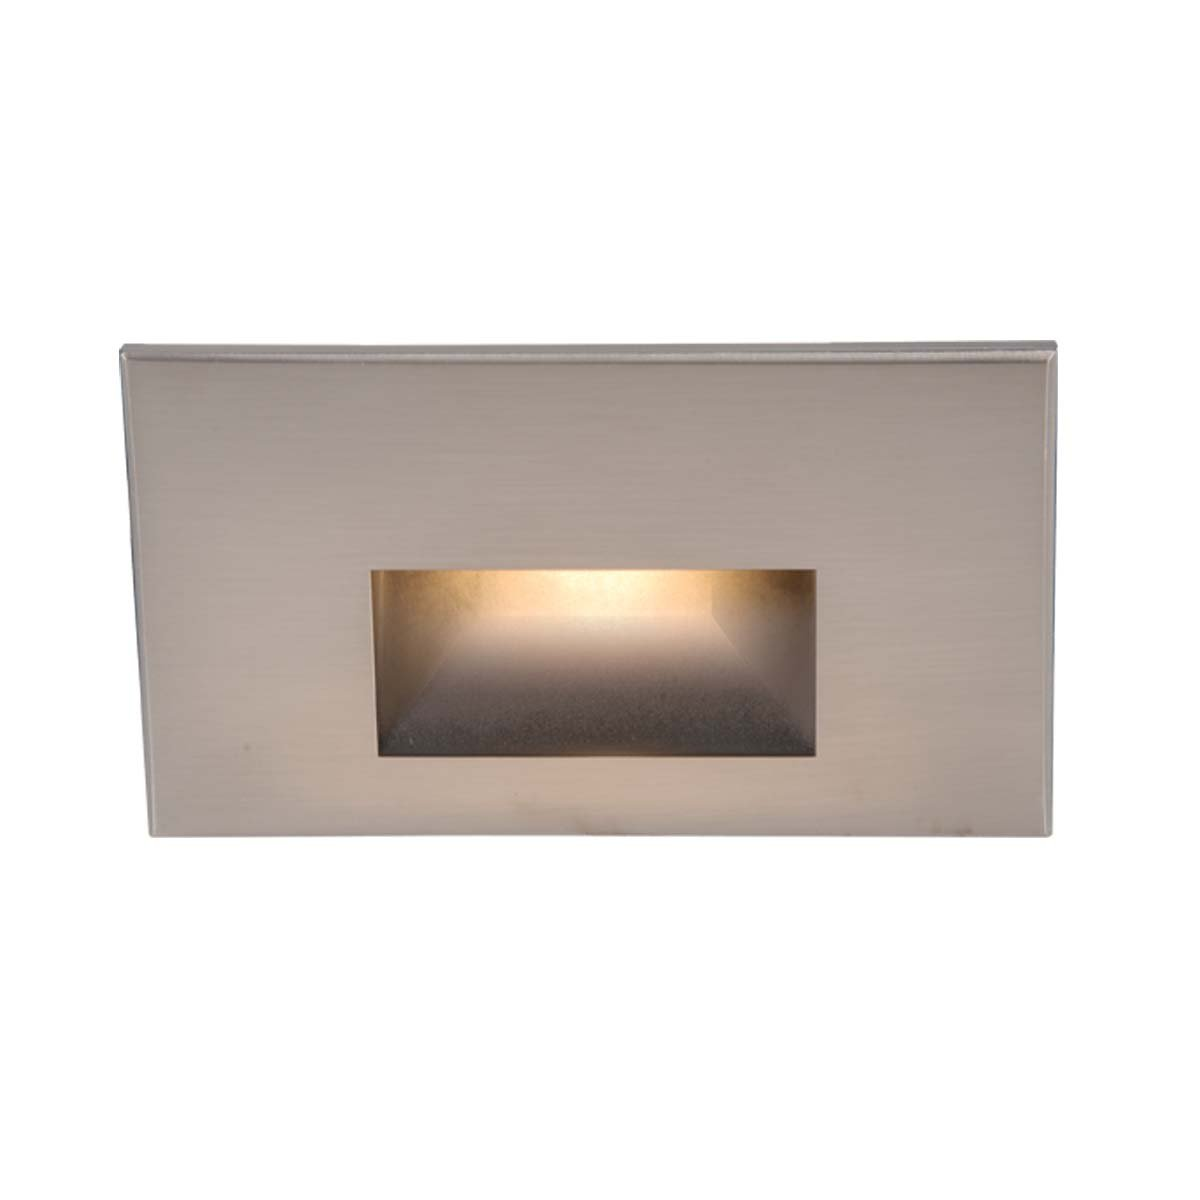 lighting light index hinkley led by luna horizontal lights step